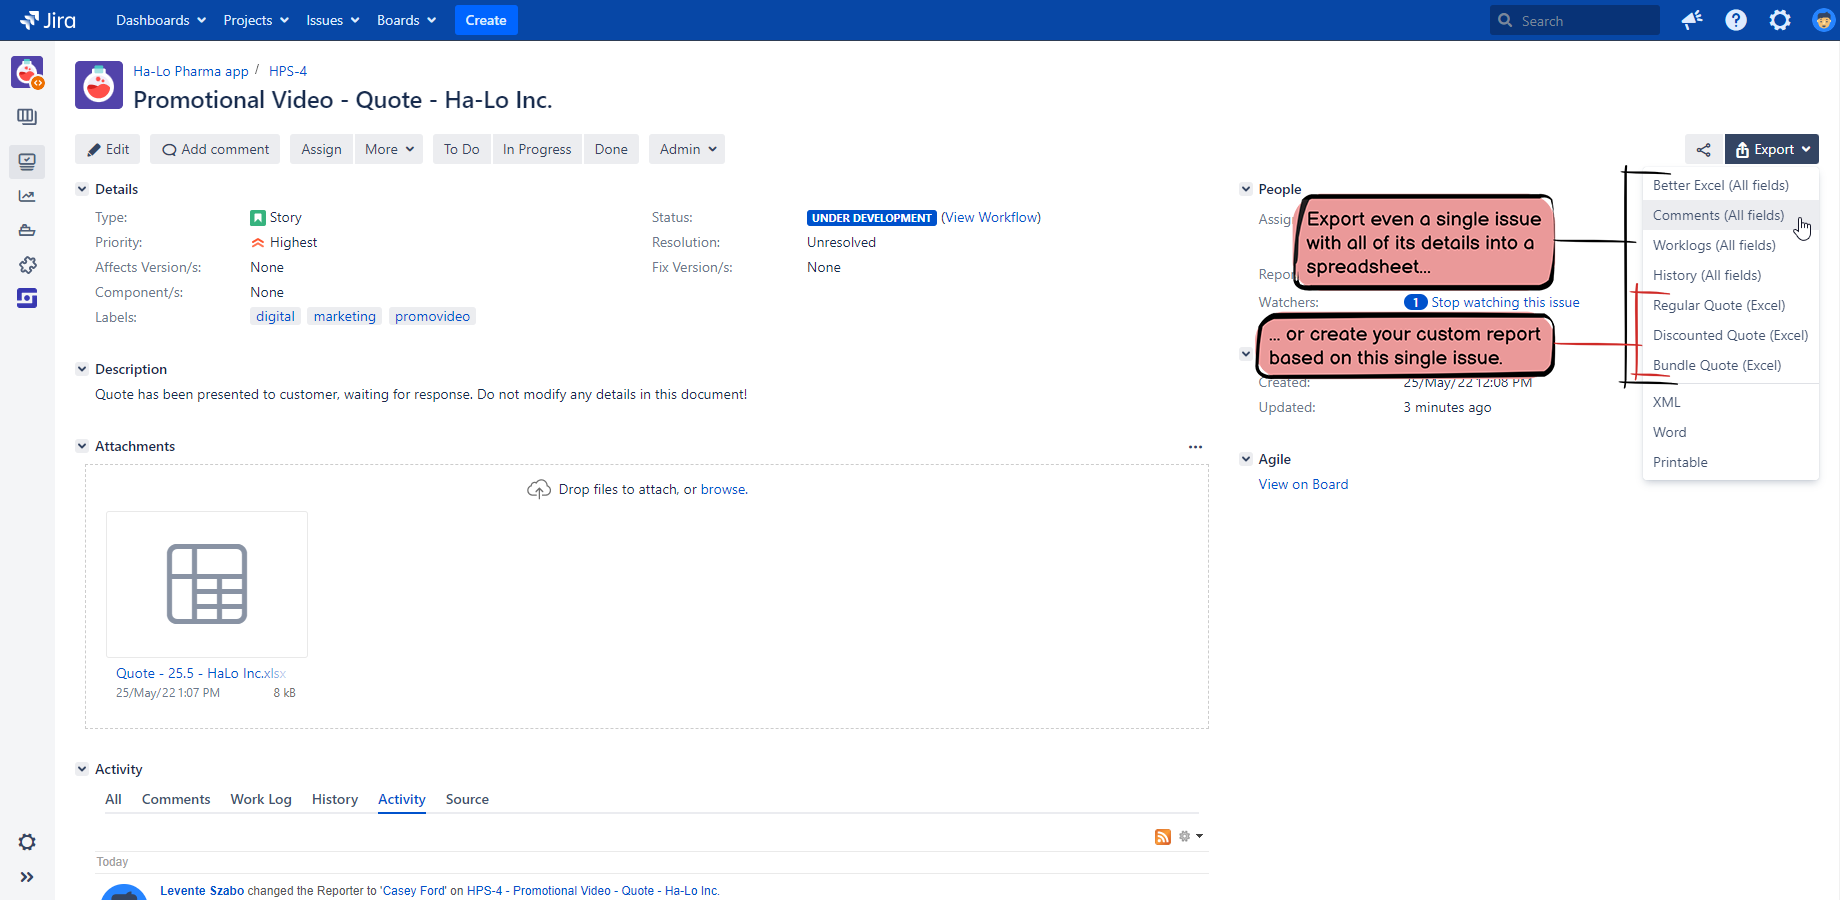 User Manual - Better Excel Exporter for Jira | Midori